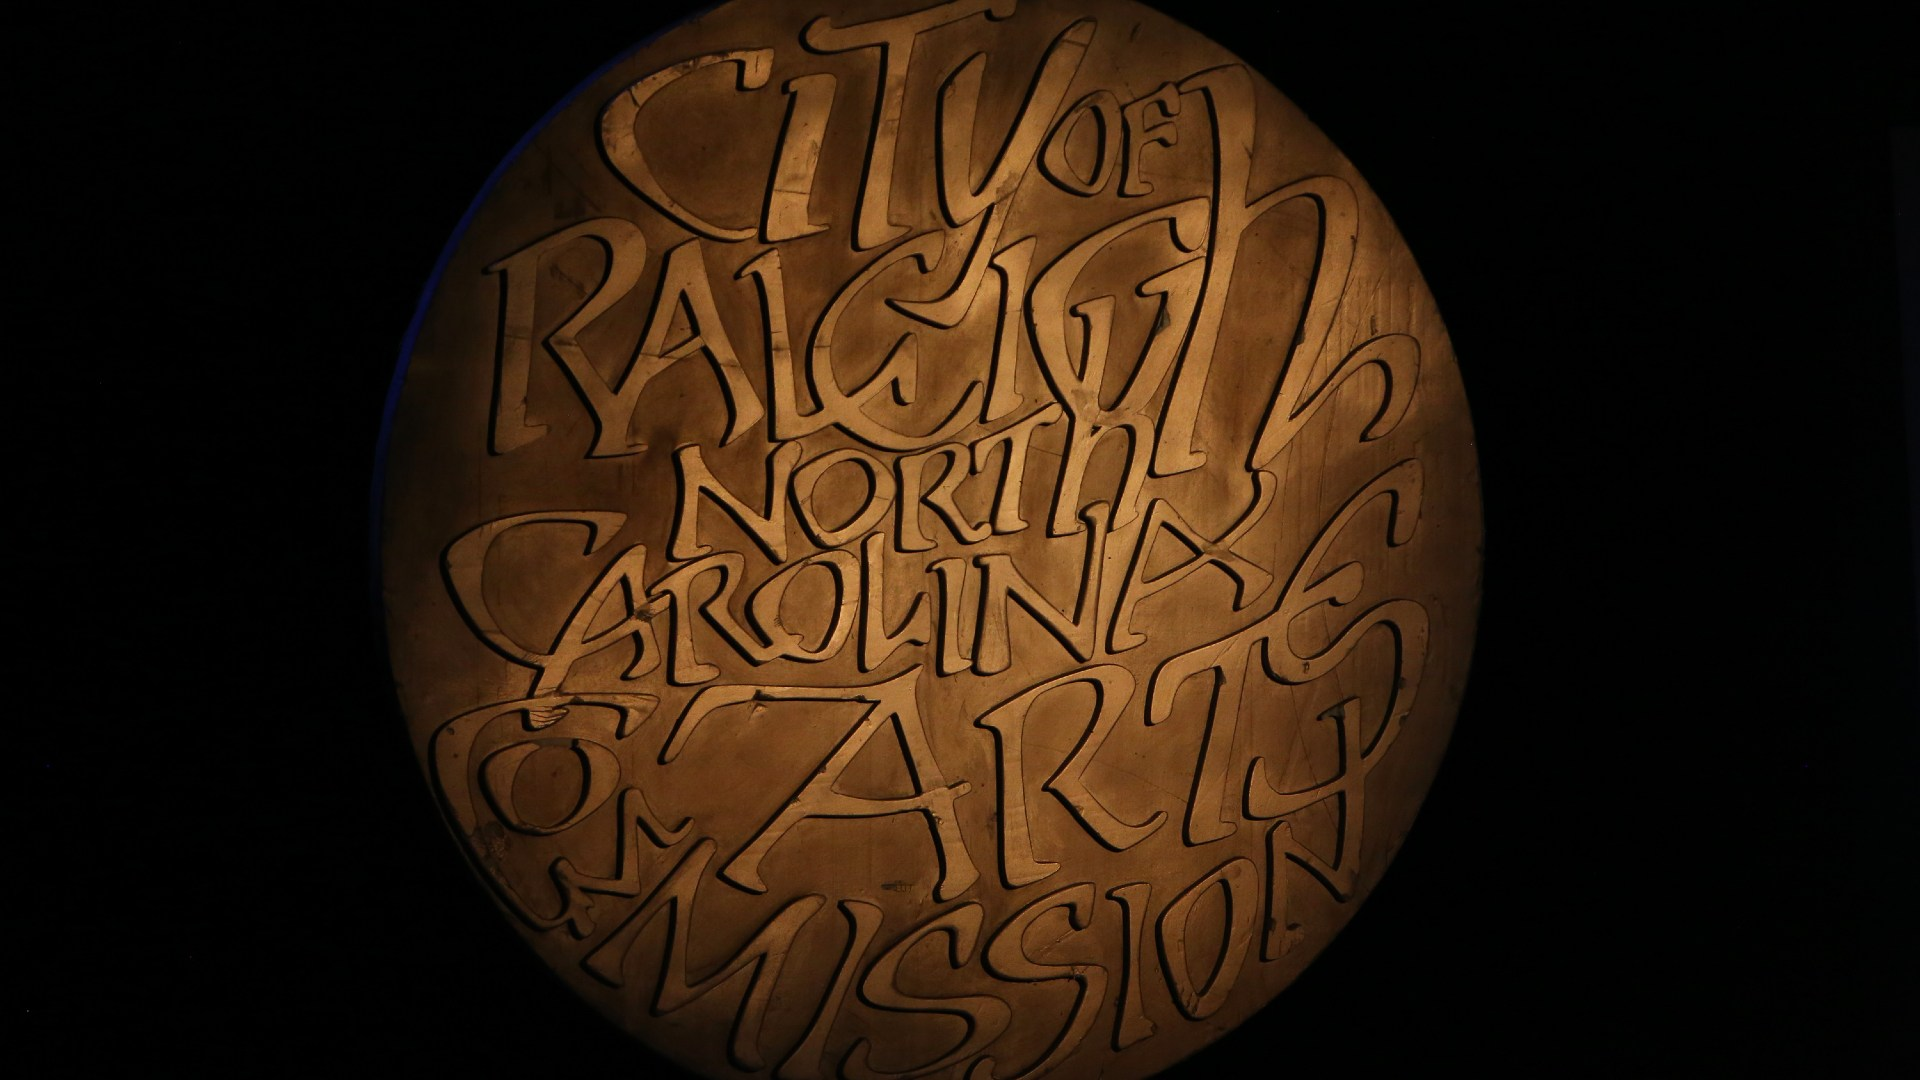 Medal of Arts award which reads City of Raleigh North Carolina Arts Commission